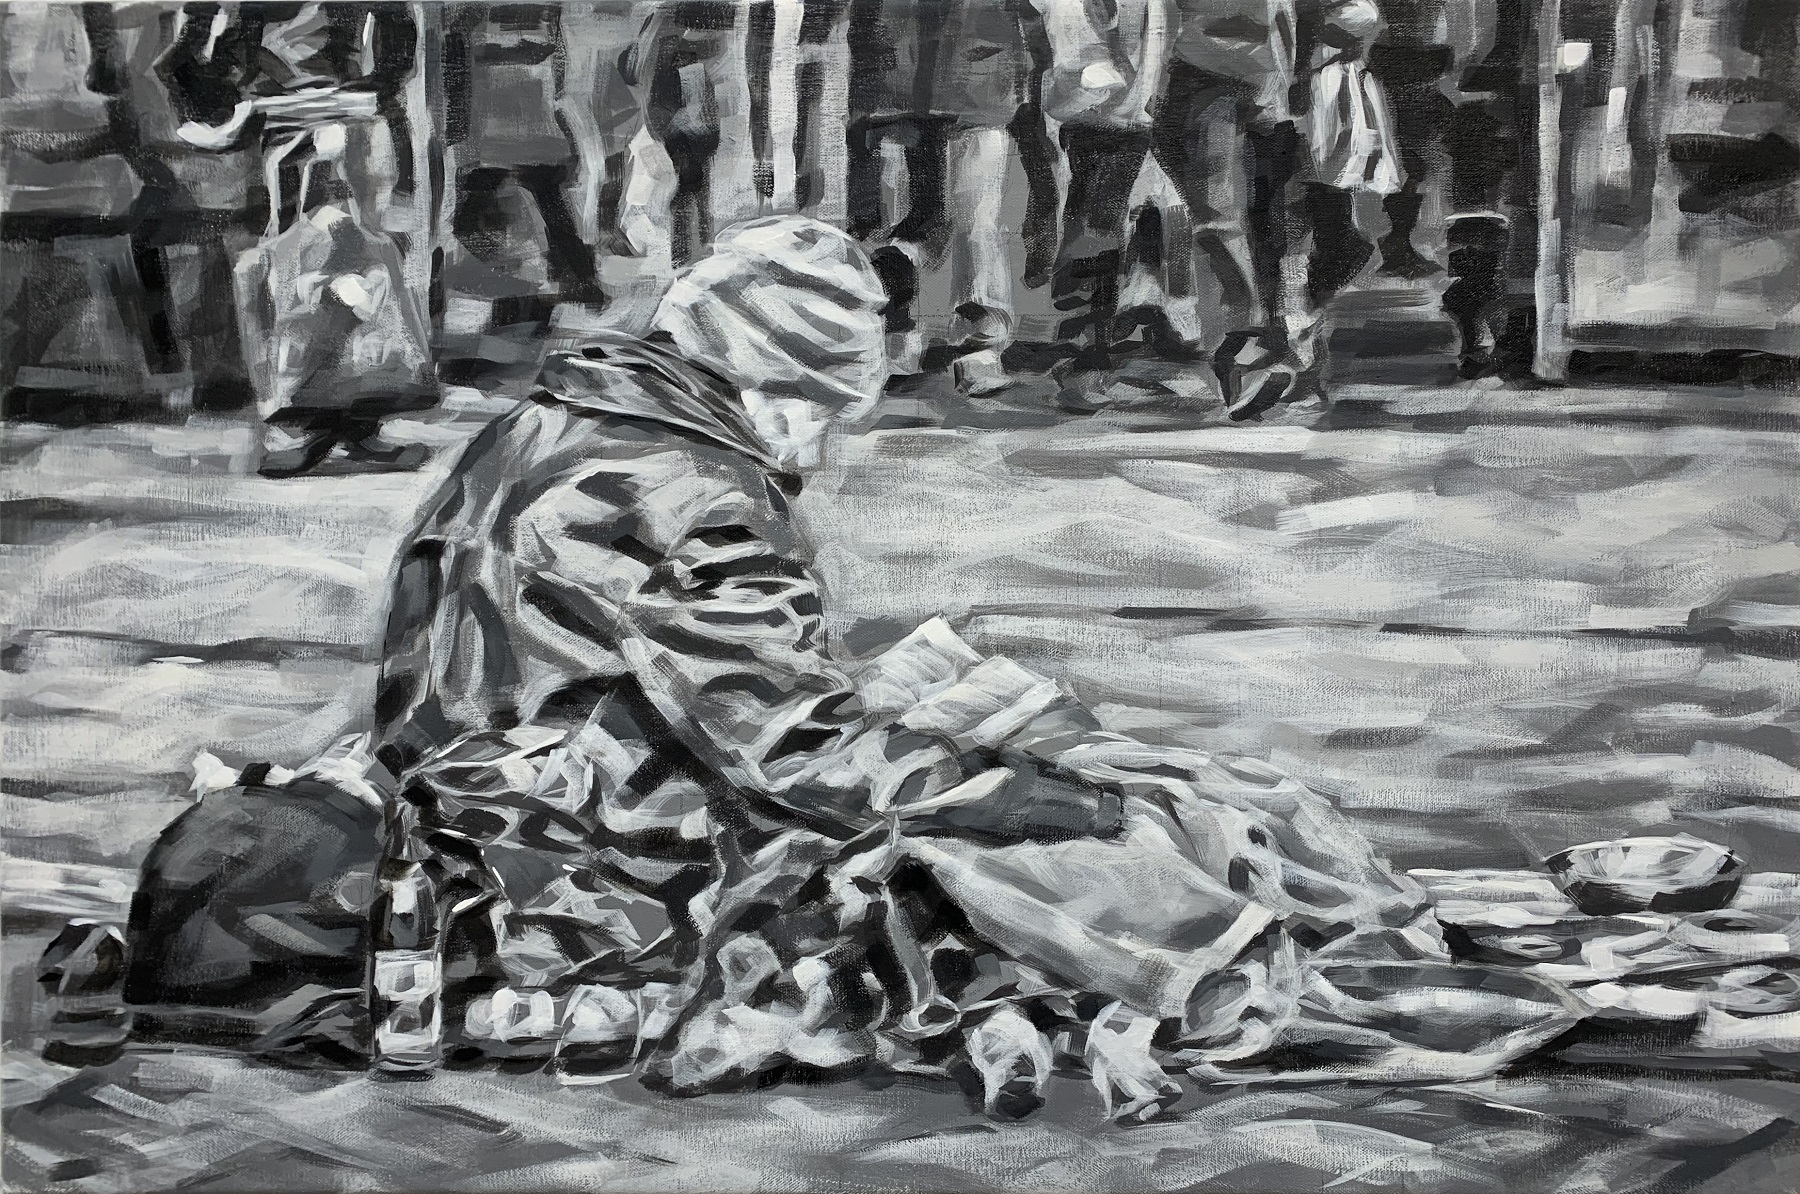 """Sitting in a shopping mall"", Öl auf Leinwand, 60x90 cm, 2020"